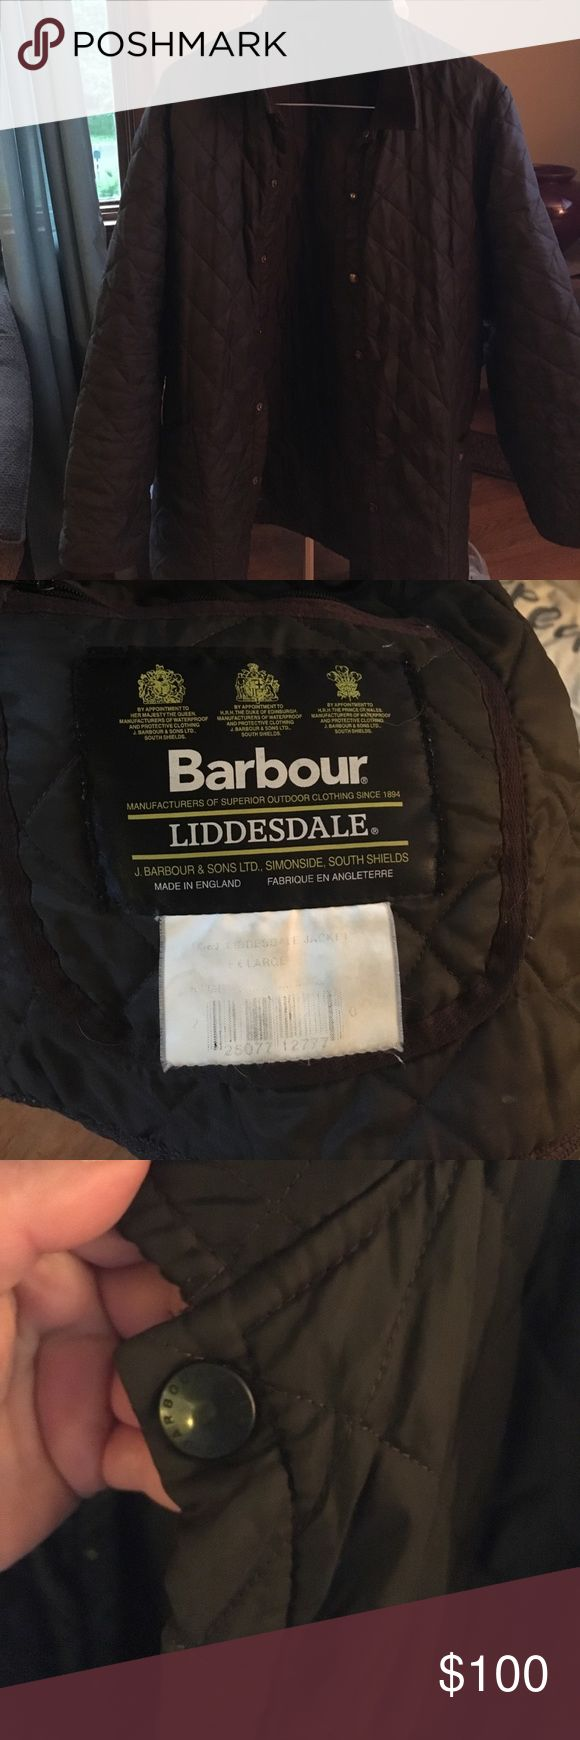 Men's Barbour liddesdale quilted barn jacket - xl Classic men's Barbour quilted liddesdale jacket / contrast corduroy collar / two bottom front pockets - one secret inside pocket with zipper - dark olive - size XL. Machine washable. Some pulled threads on back of sleeves (shown) Barbour Jackets & Coats